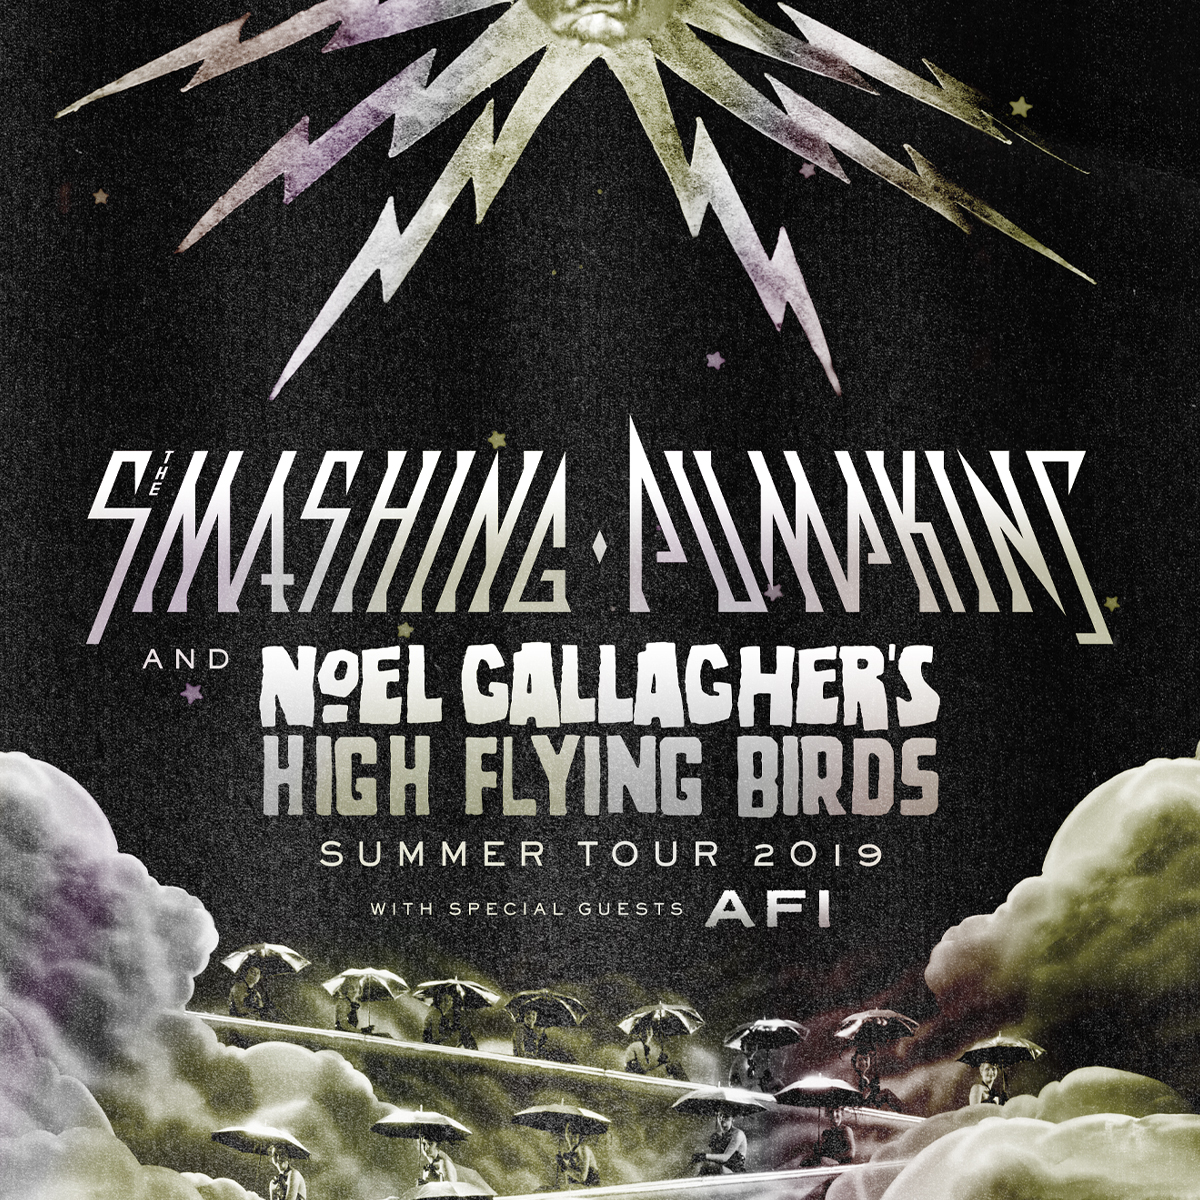 The Smashing Pumpkins & Noel Gallagher's High Flying Birds with special guests AFI @ PNC Music Pavillion